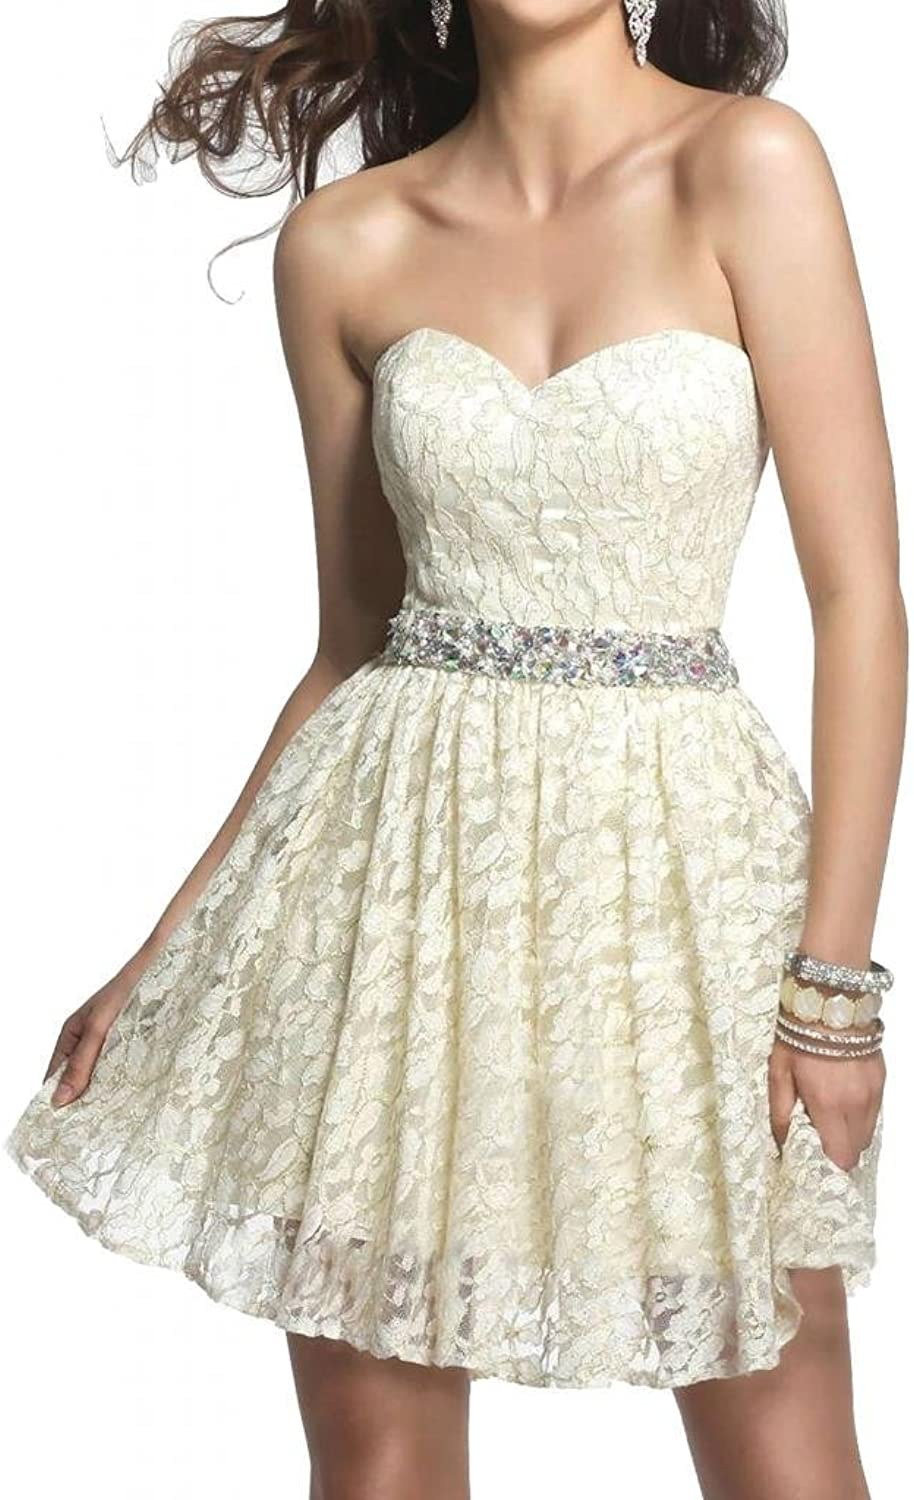 Angel Bride 2015 new arrival Ivory Mini Sweethart Lace Homecoming Dresses